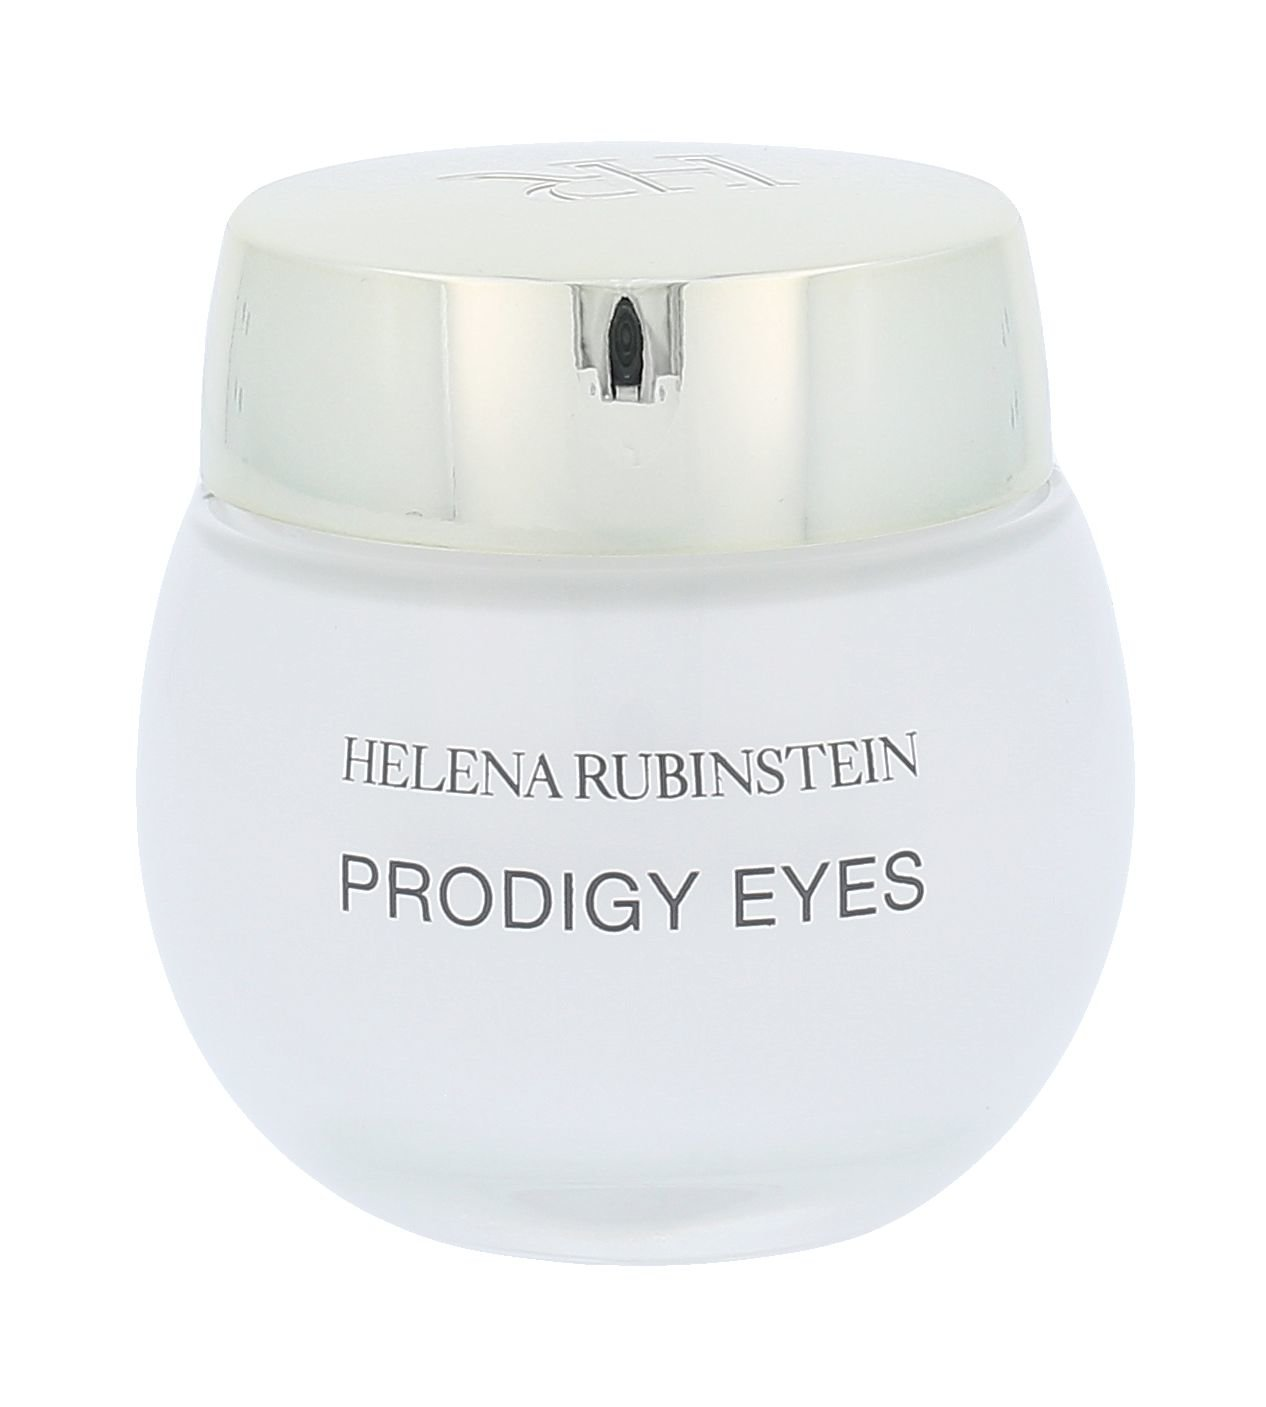 Helena Rubinstein Prodigy Eyes Cosmetic 15ml  Anti-Ageing